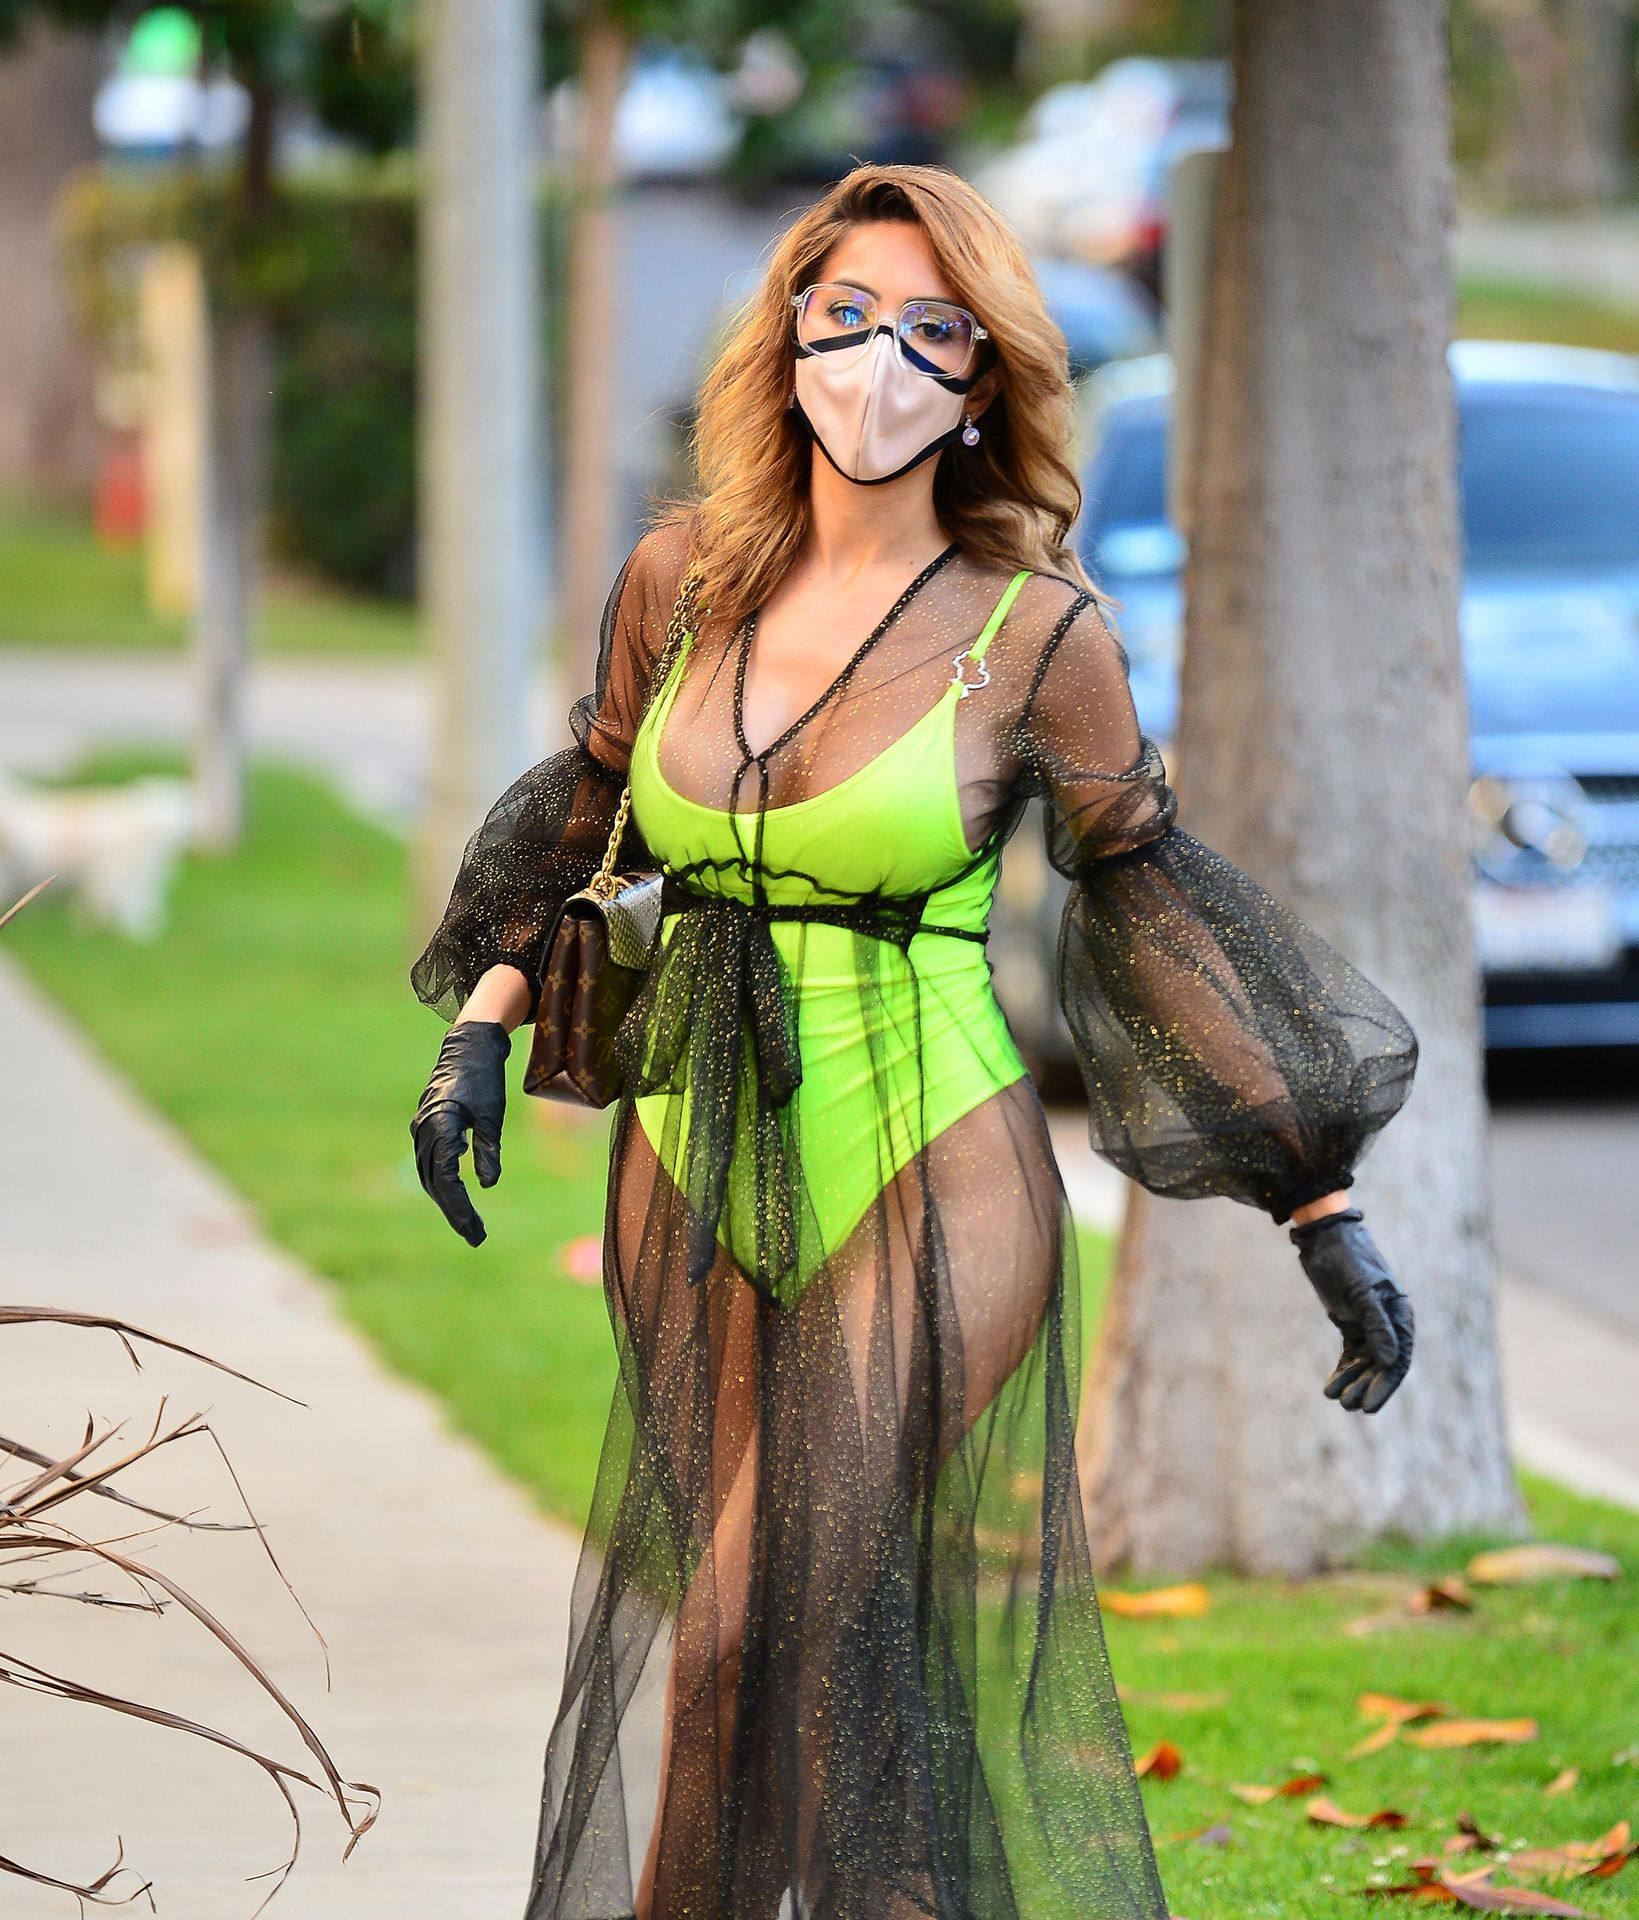 Farrah Abraham – Sexy Big Ass In Neon Green Swimsuit Out In Los Angeles 0016